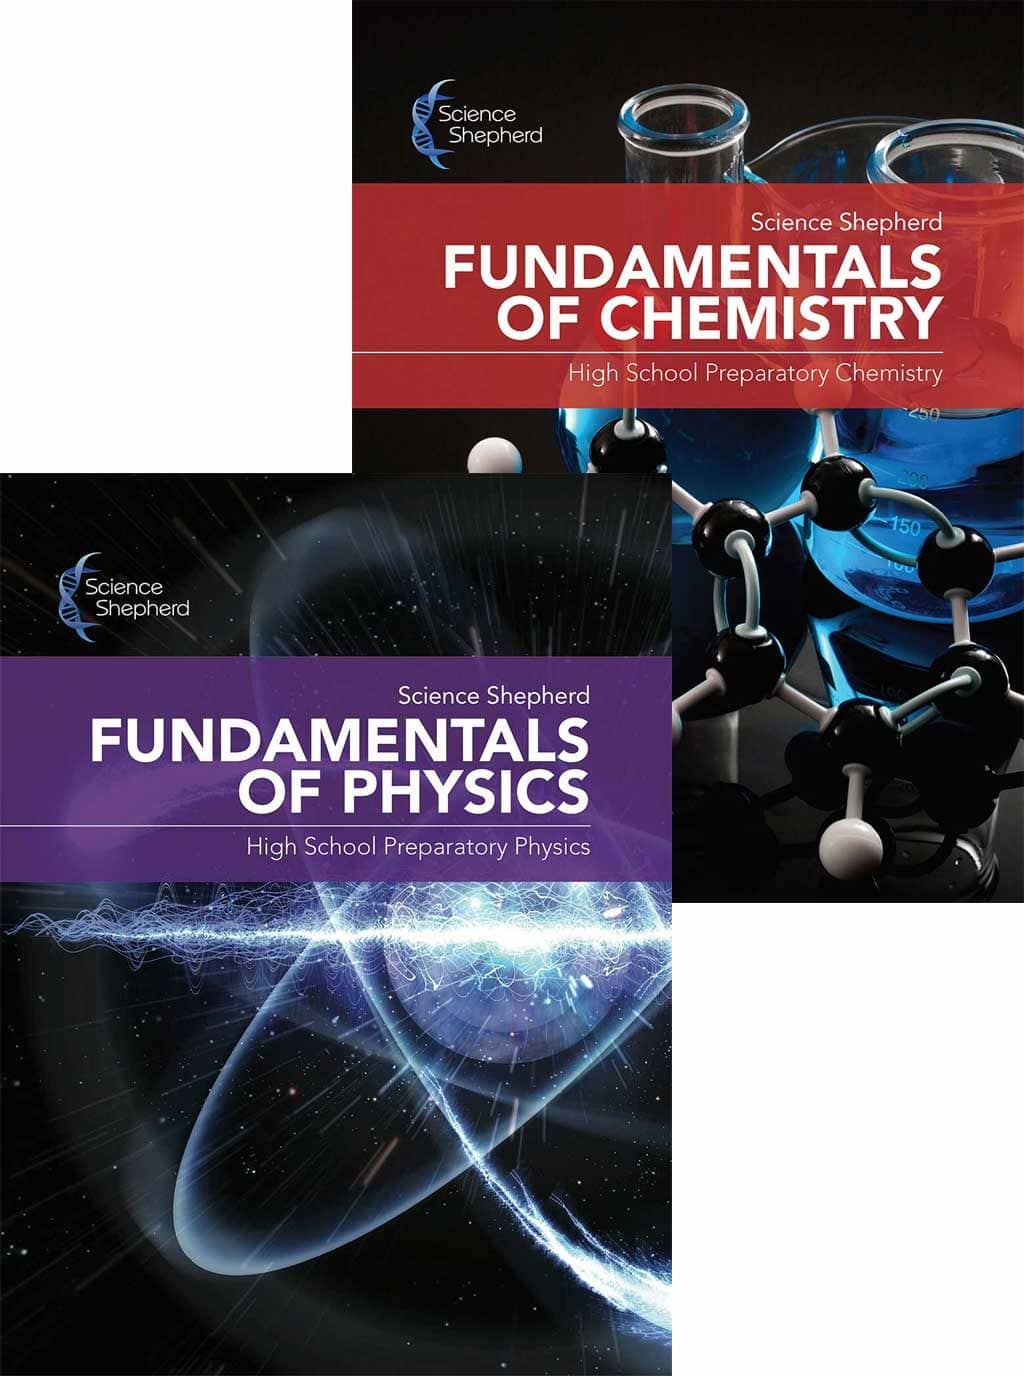 Science Shepherd homeschool science middle school Chemistry and Physics bundle textbook covers